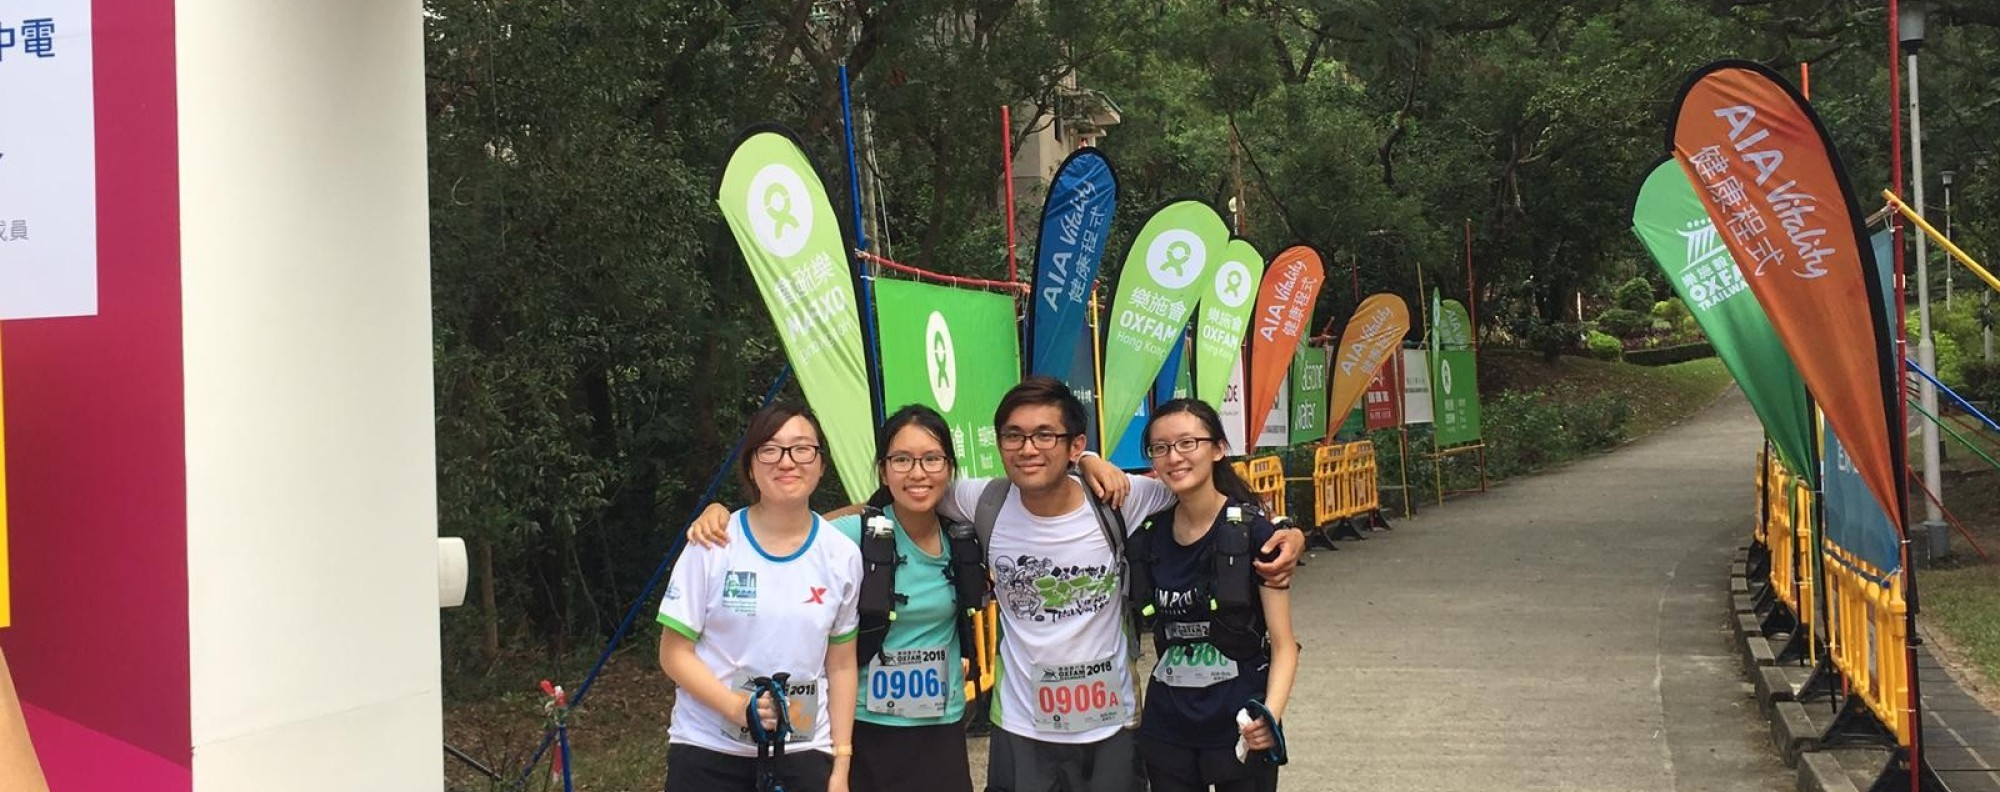 (From left) May Cheung, Amy Pang, David Ip, and Sharon Ho (The Mads) were the final team to finish Oxfam Trailwalker 2018 in 47 hours and 51 minutes. Photos: Ben Young